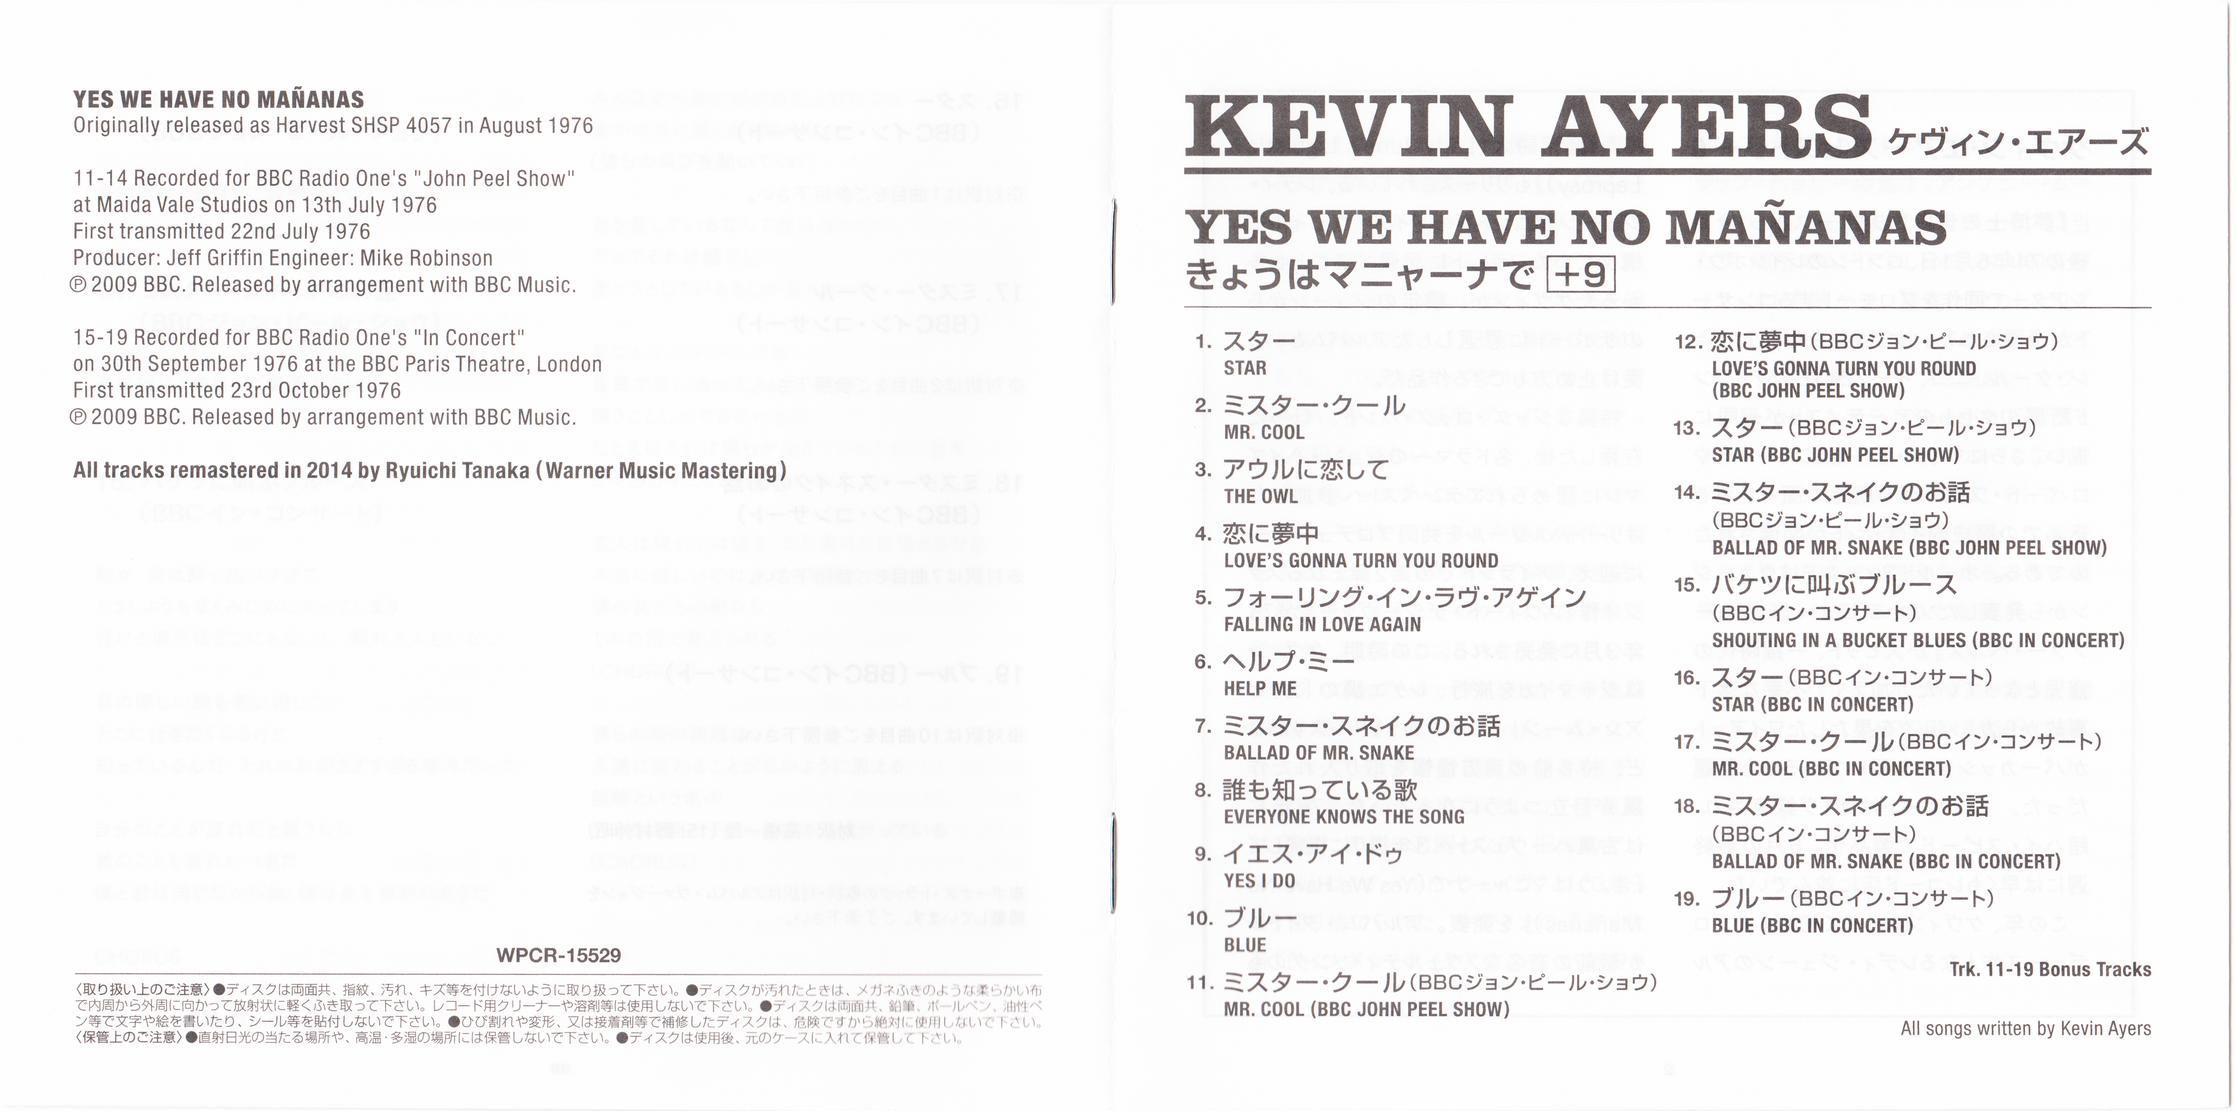 Kevin Ayers - Yes We Have No Mananas (1976) {2014 Remaster Japanese Mini LP SHM-CD Edition WPCR-15529}